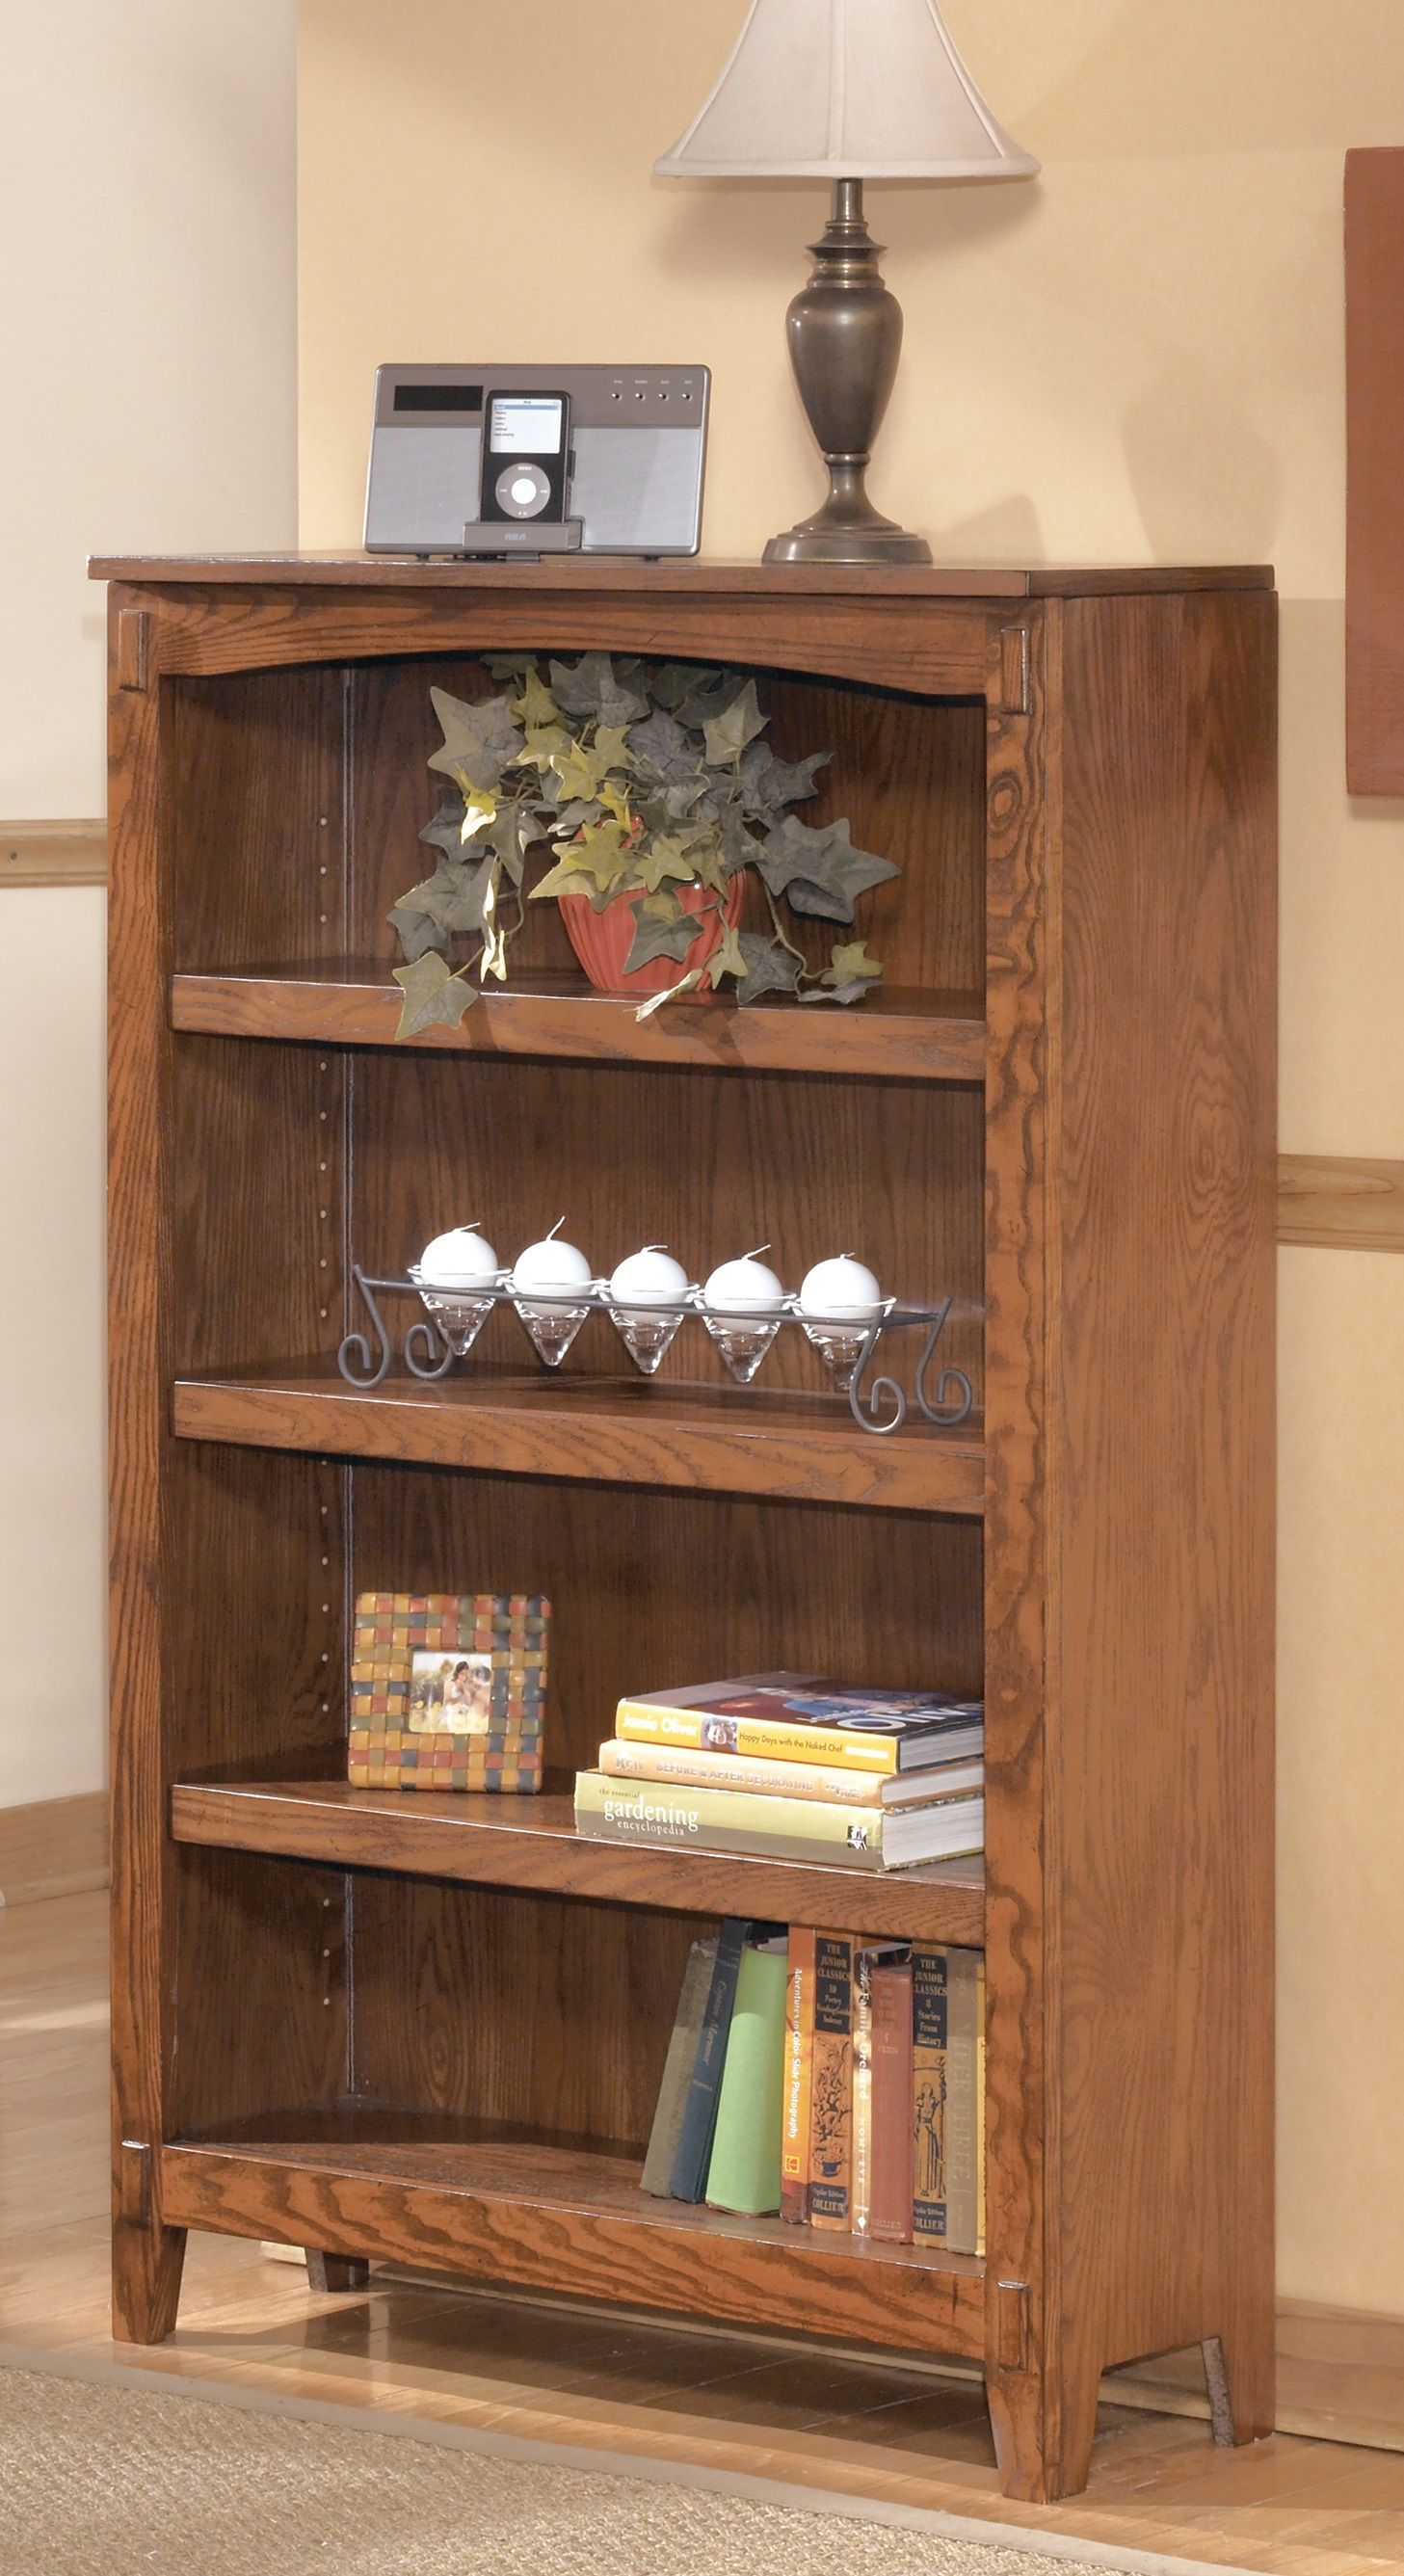 Cross Island - Medium Bookcase - H319-16 Bookcases from Ashley at